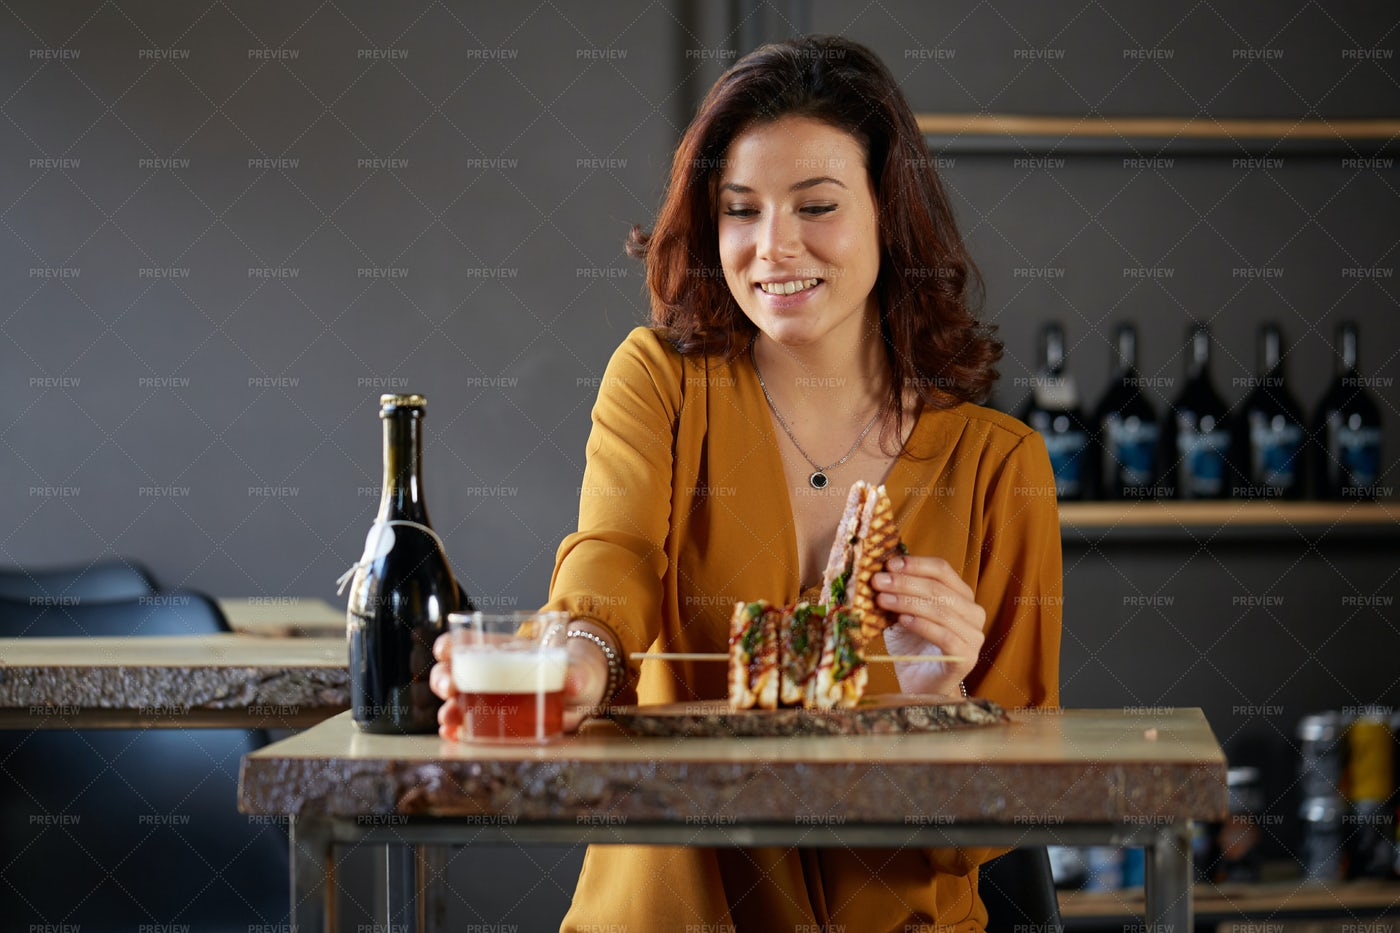 Woman Drinking And Eating: Stock Photos